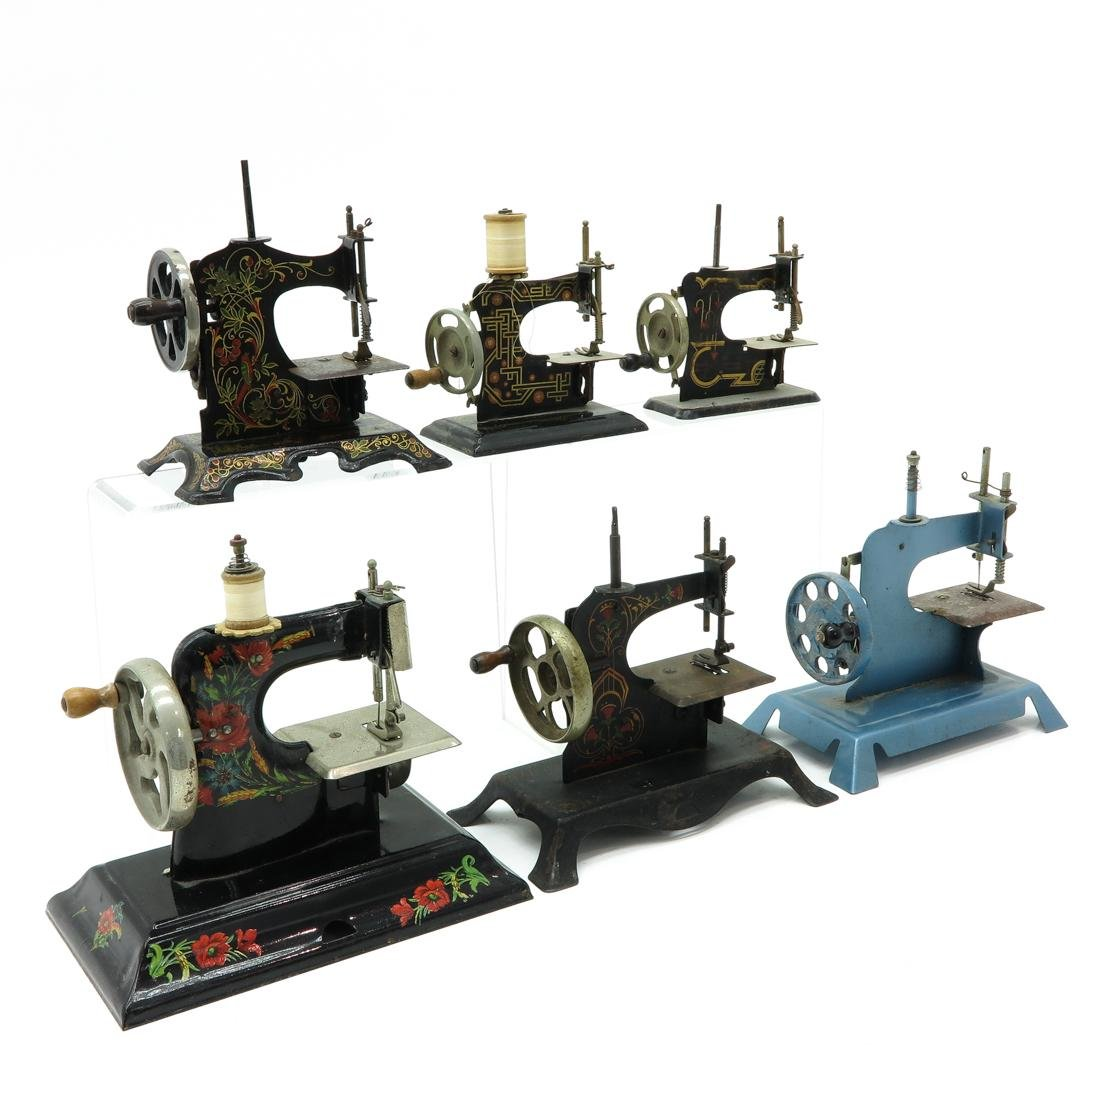 Lot of 6 Vintage Toy Sewing Machines - 2